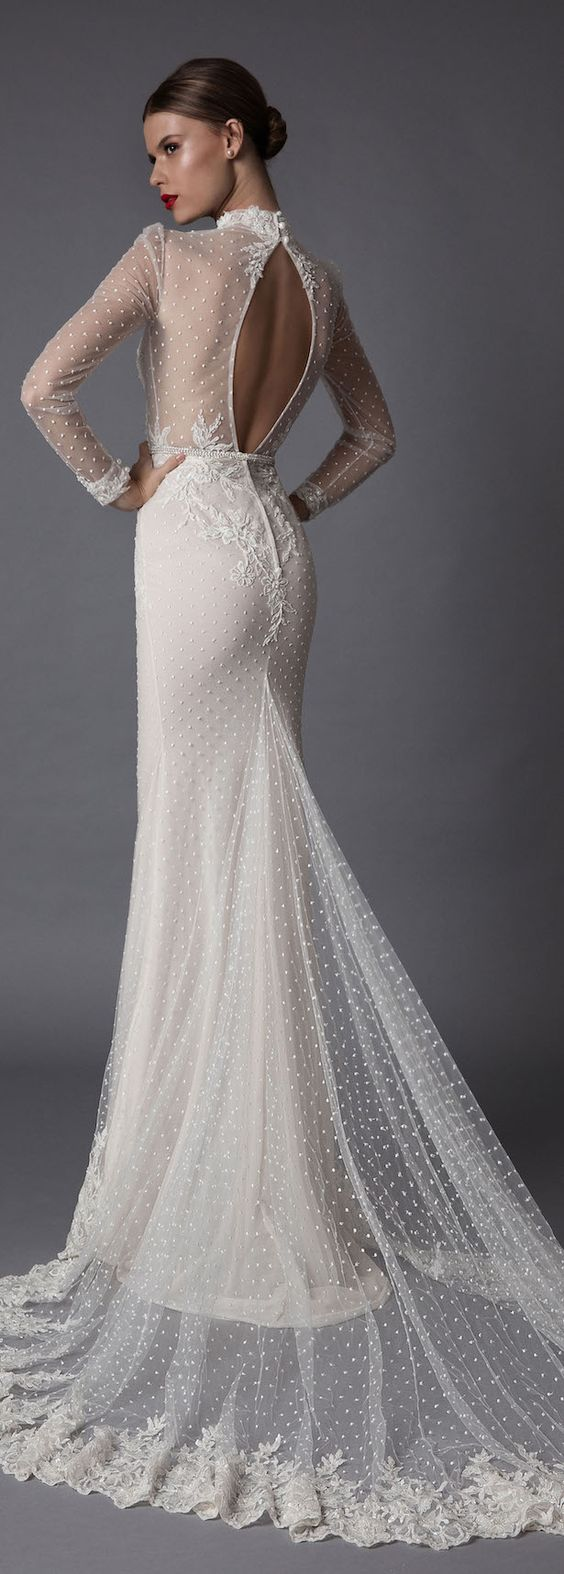 Muse by Berta Wedding Dress: